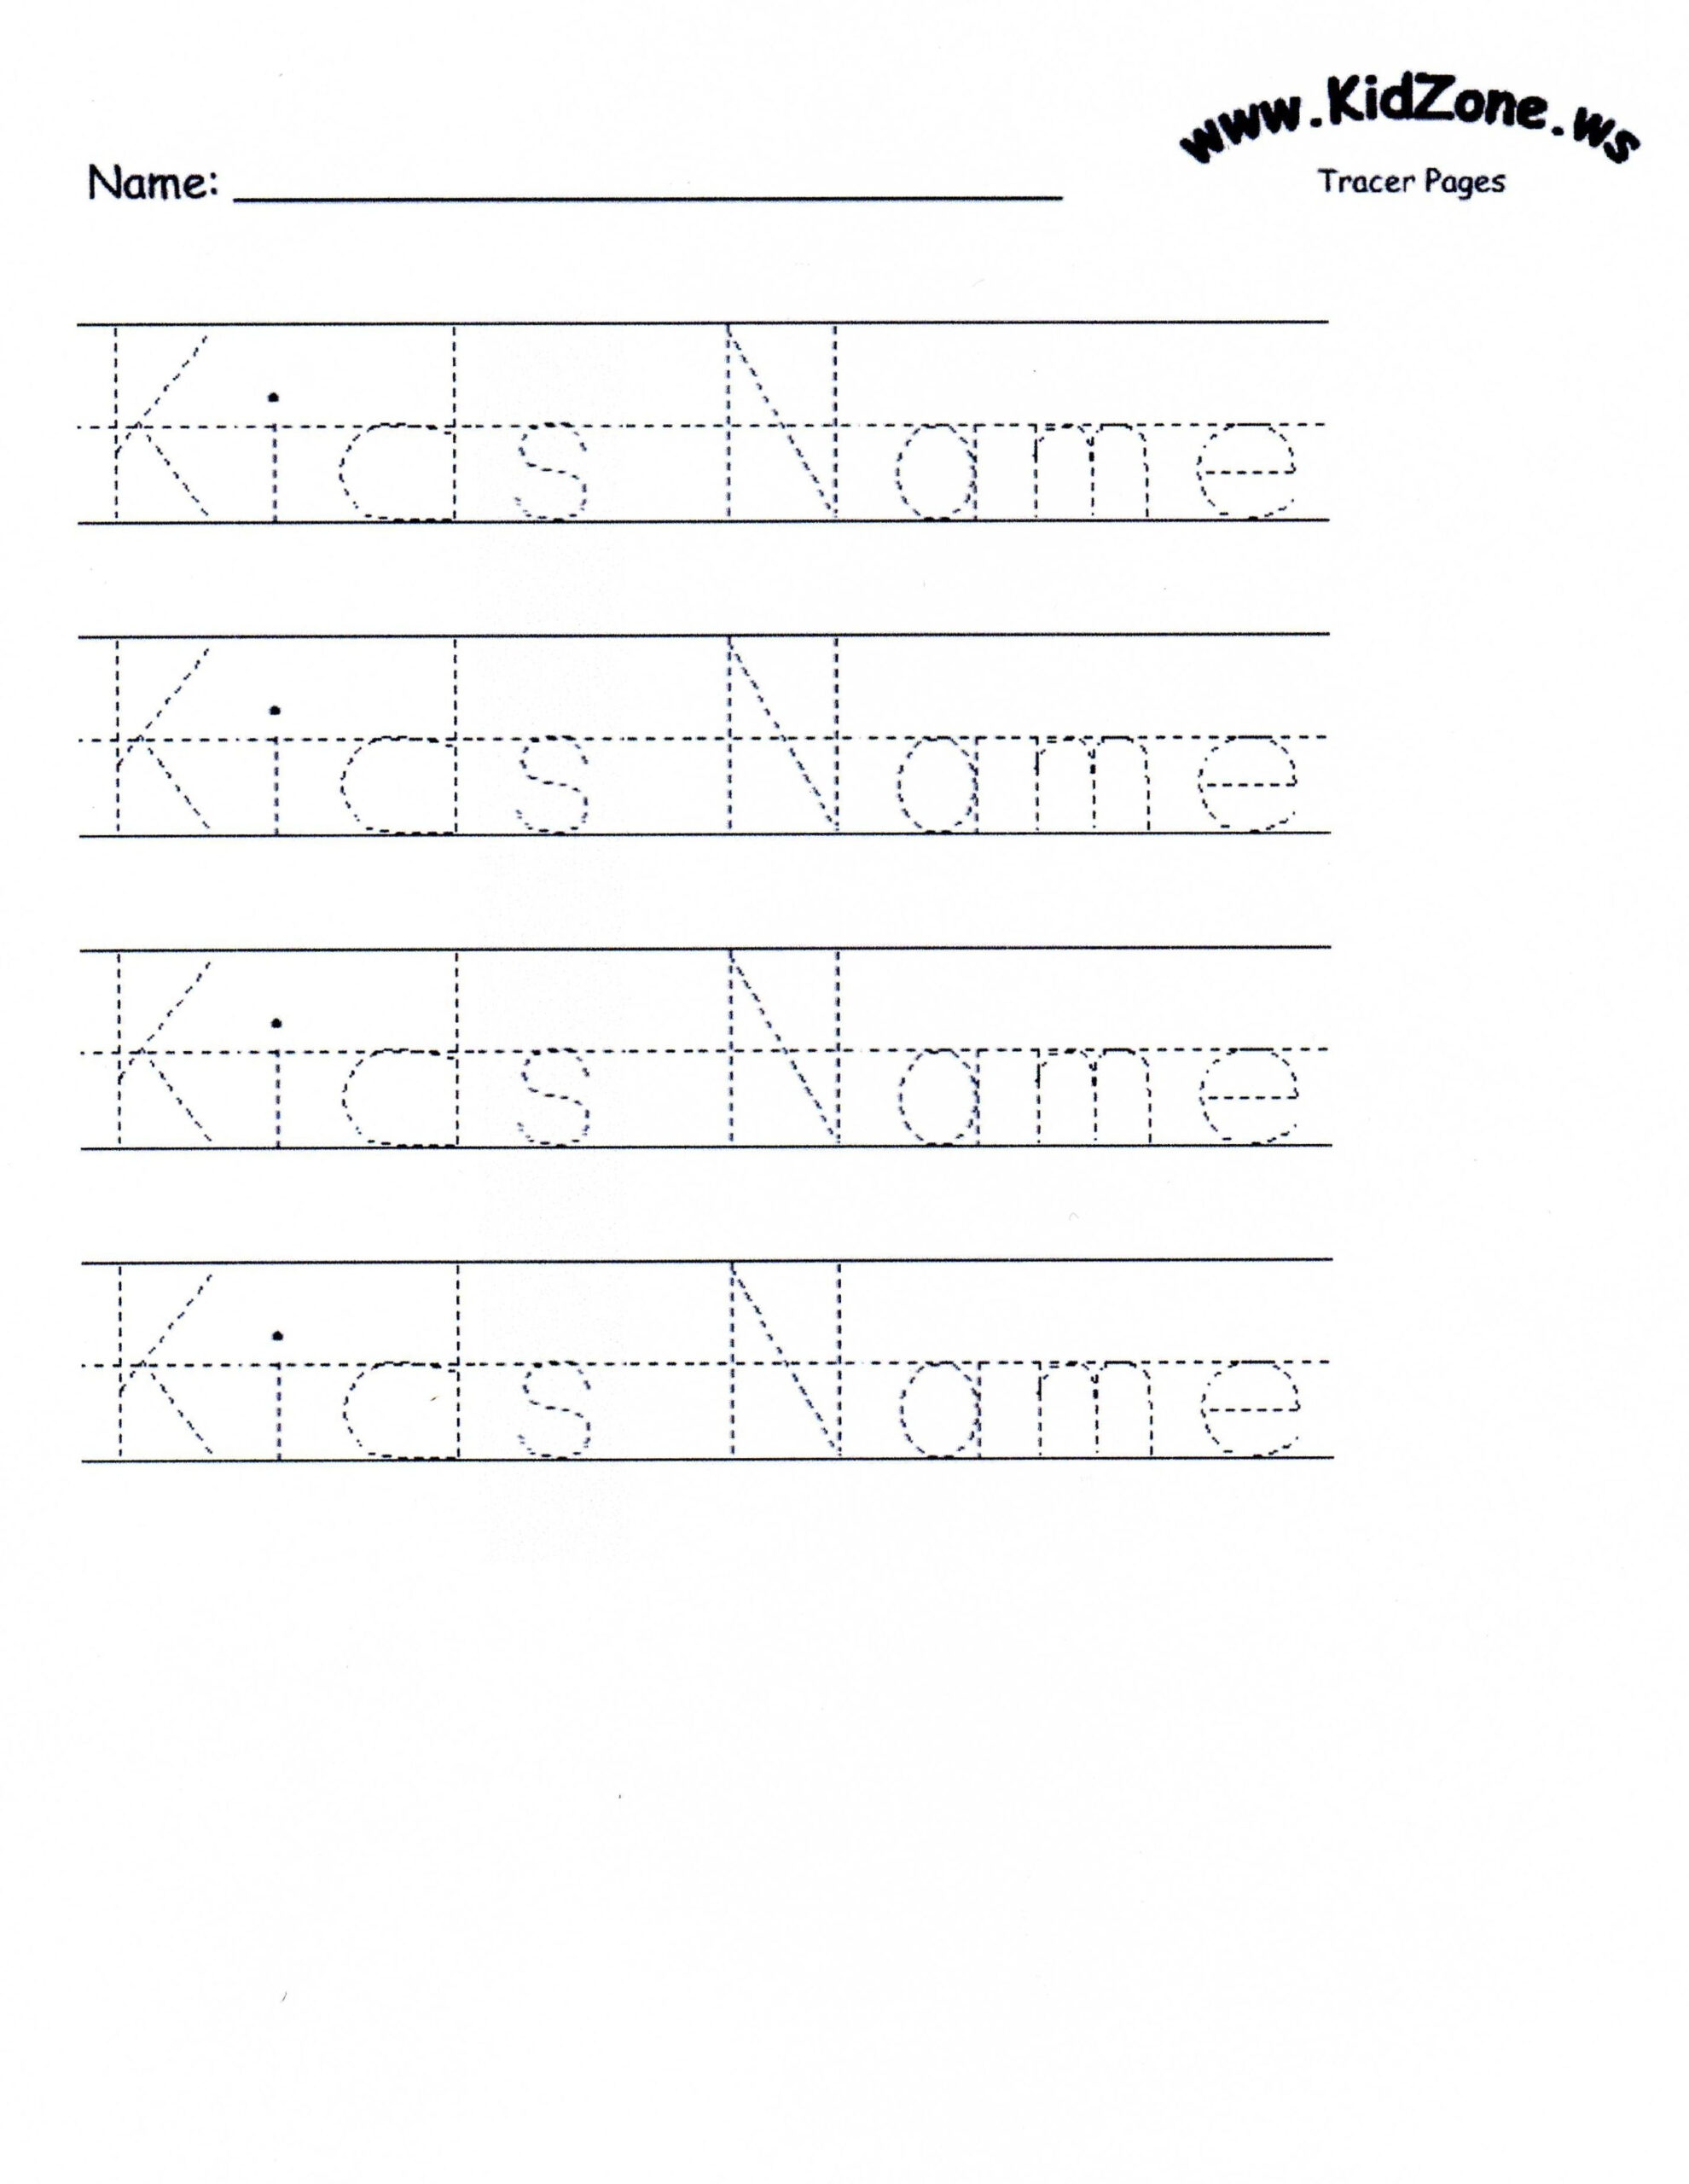 Customizable Printable Letter Pages | Name Tracing in Name Tracing Using Dots